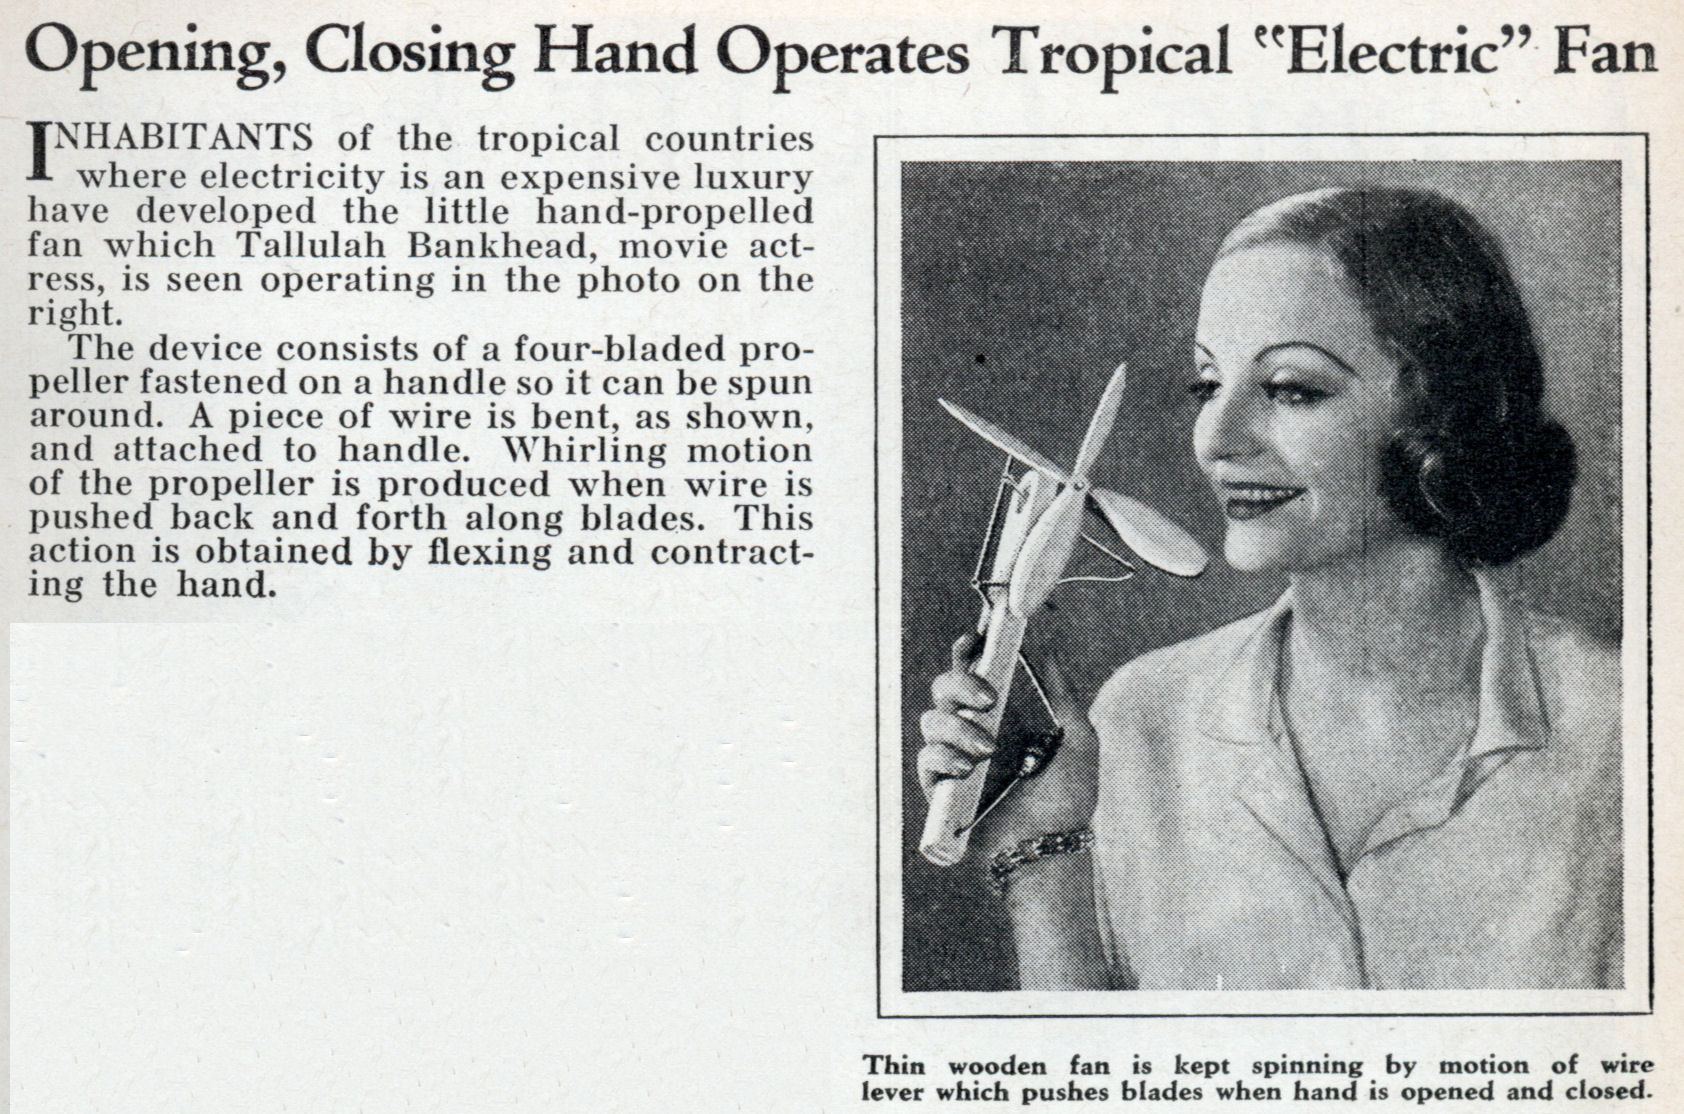 Opening Closing Hand Operates Tropical Electric Fan